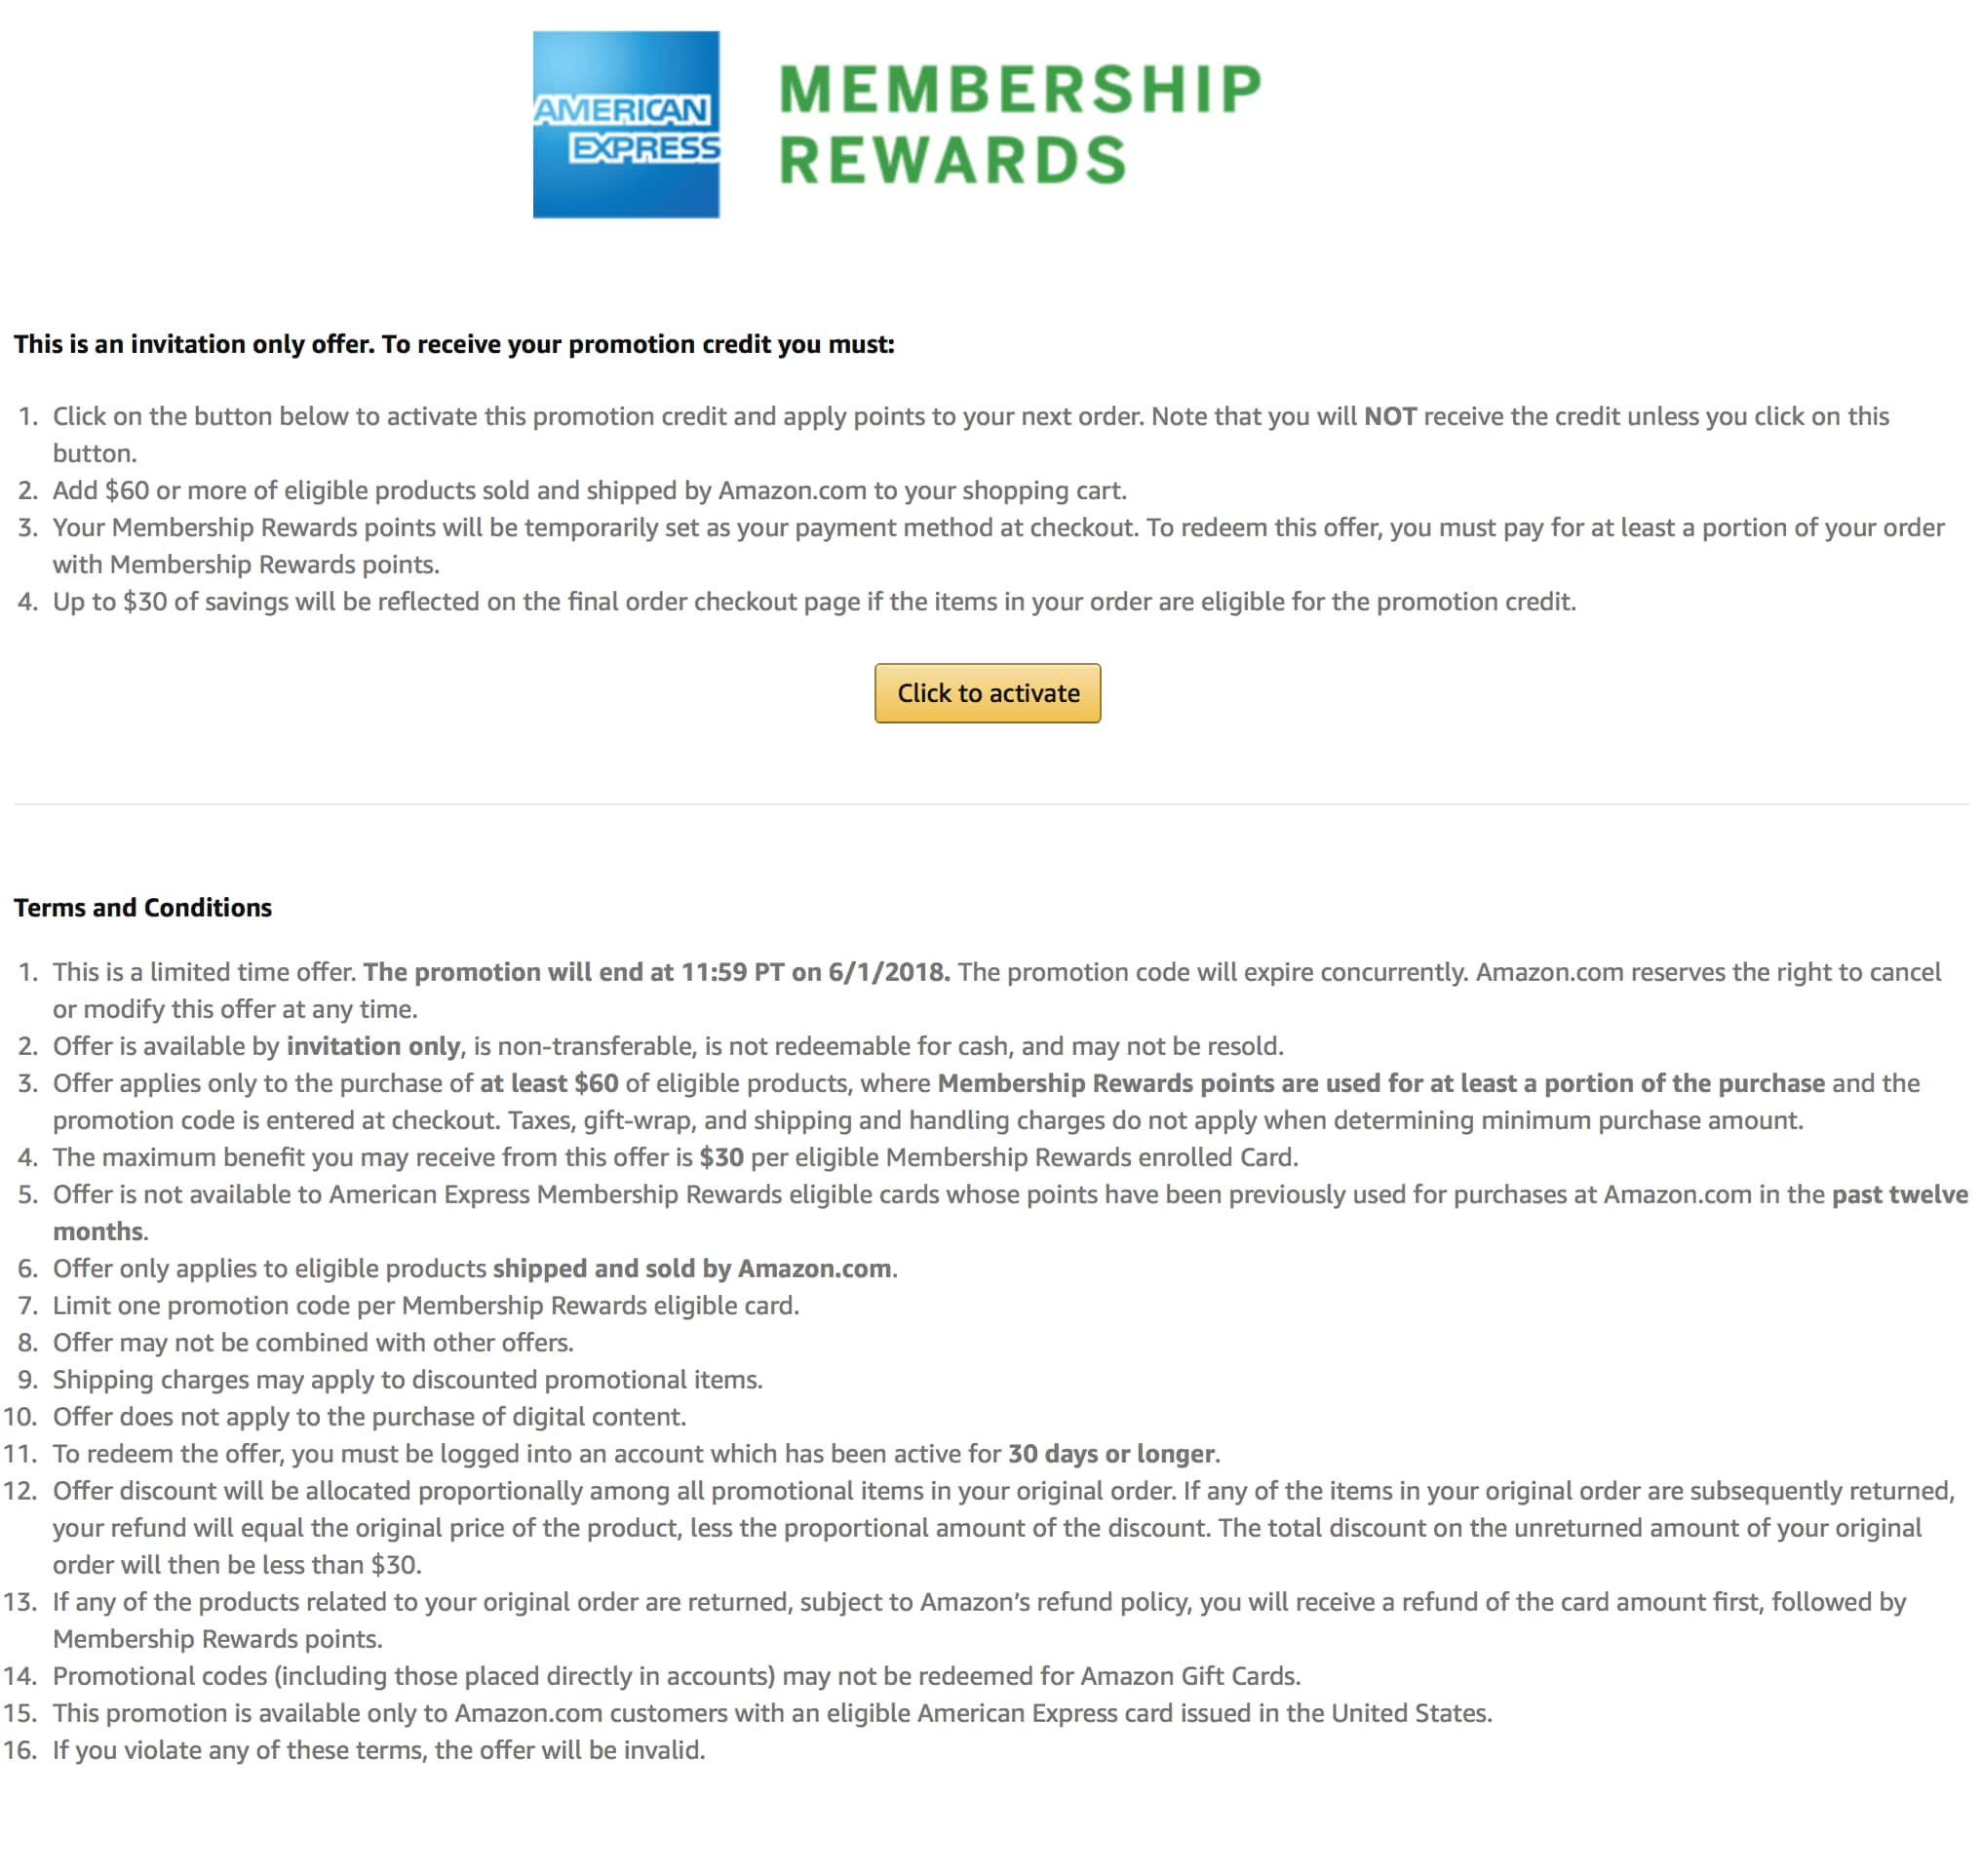 AMEX Membership Rewards: $30 off purchase of $60 or more on eligible products sold and shipped by Amazon.com